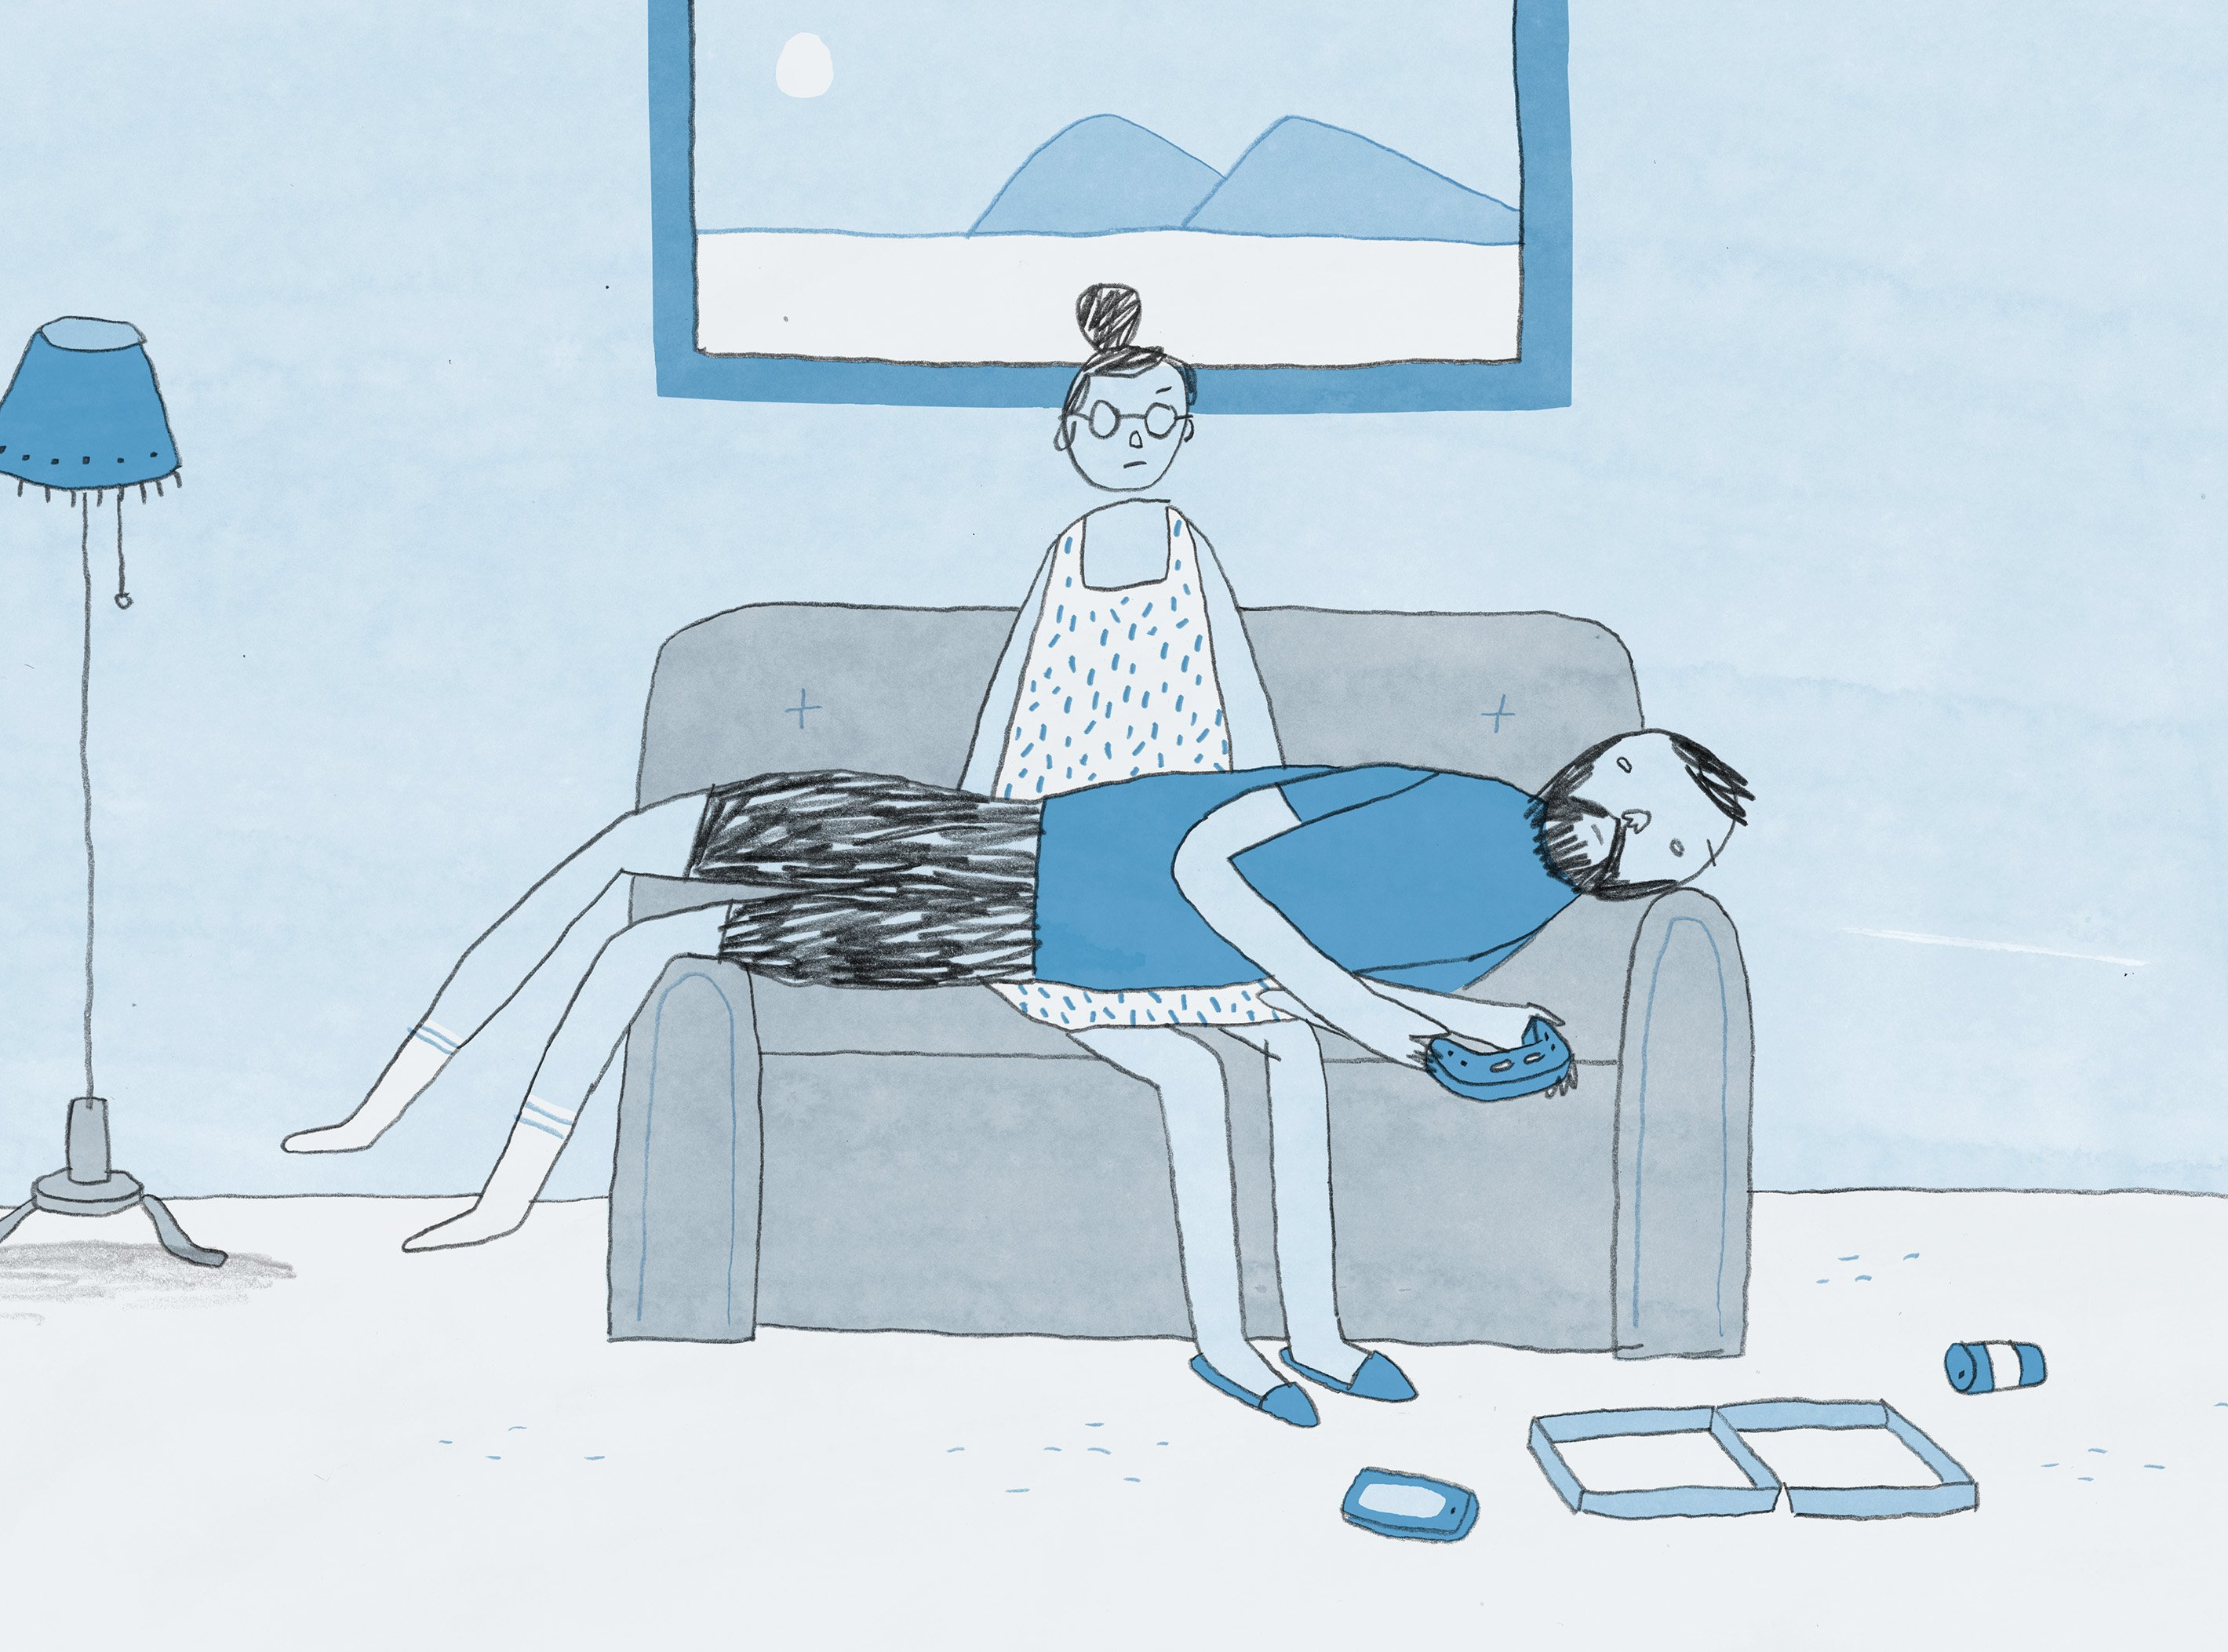 Illustration of a woman sitting on a couch with her adult son laying across her using a game controller